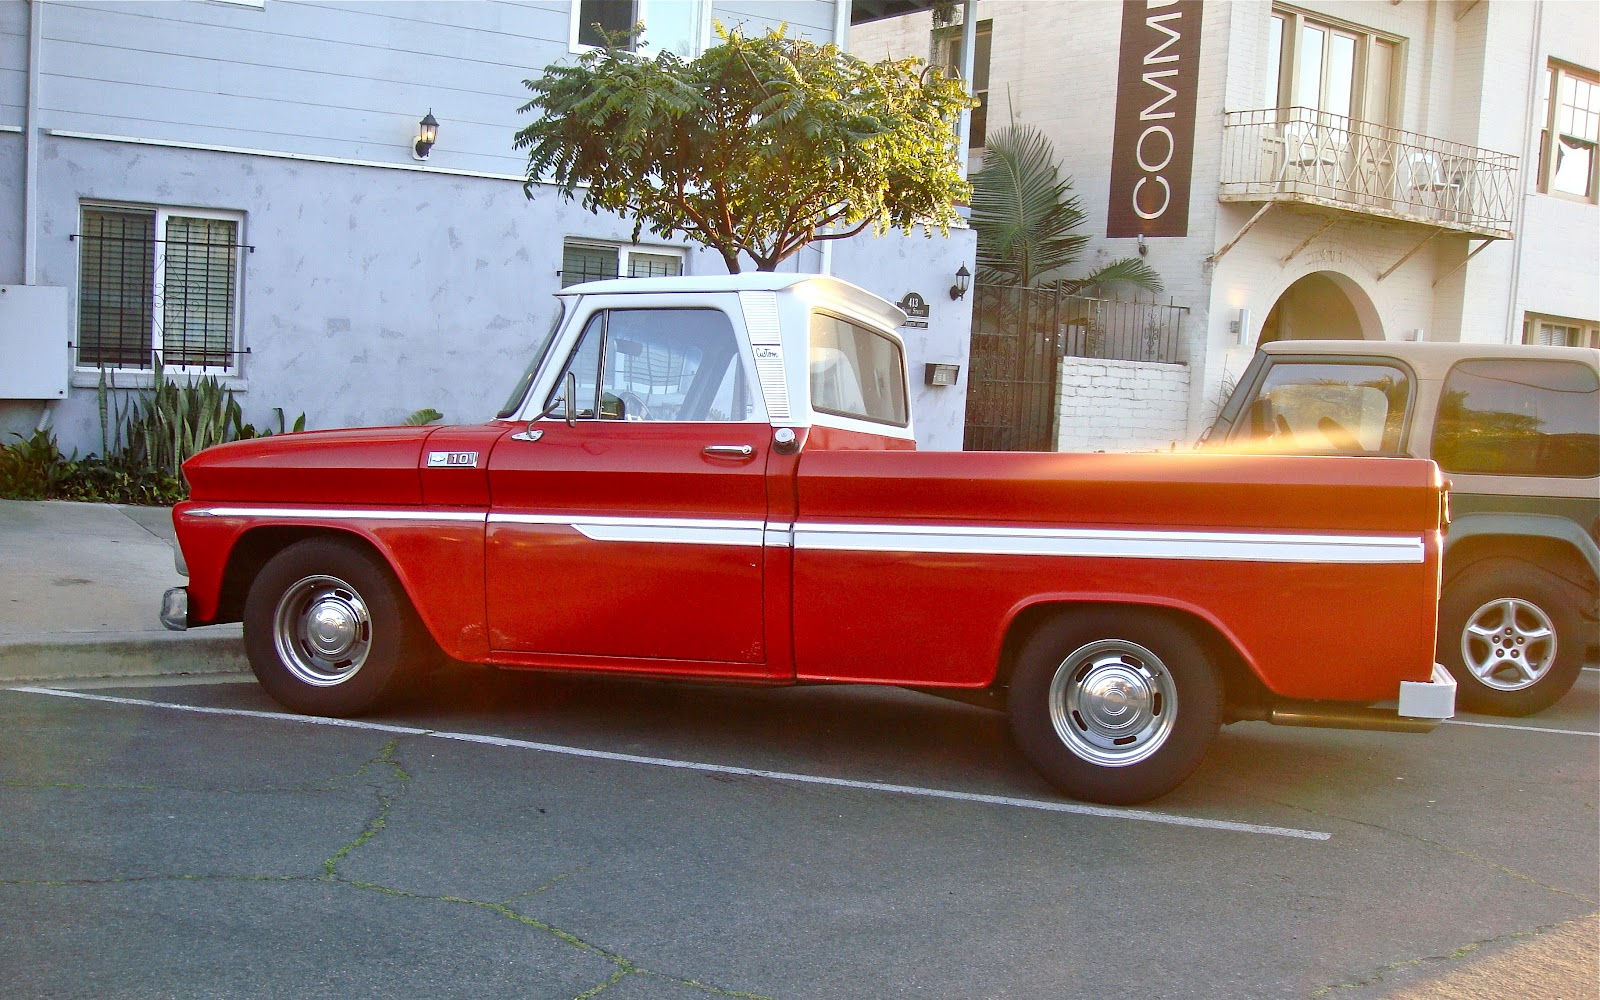 All Chevy chevy c10 wiki : THE STREET PEEP: 1965 Chevrolet C10 Shortbed Fleetside